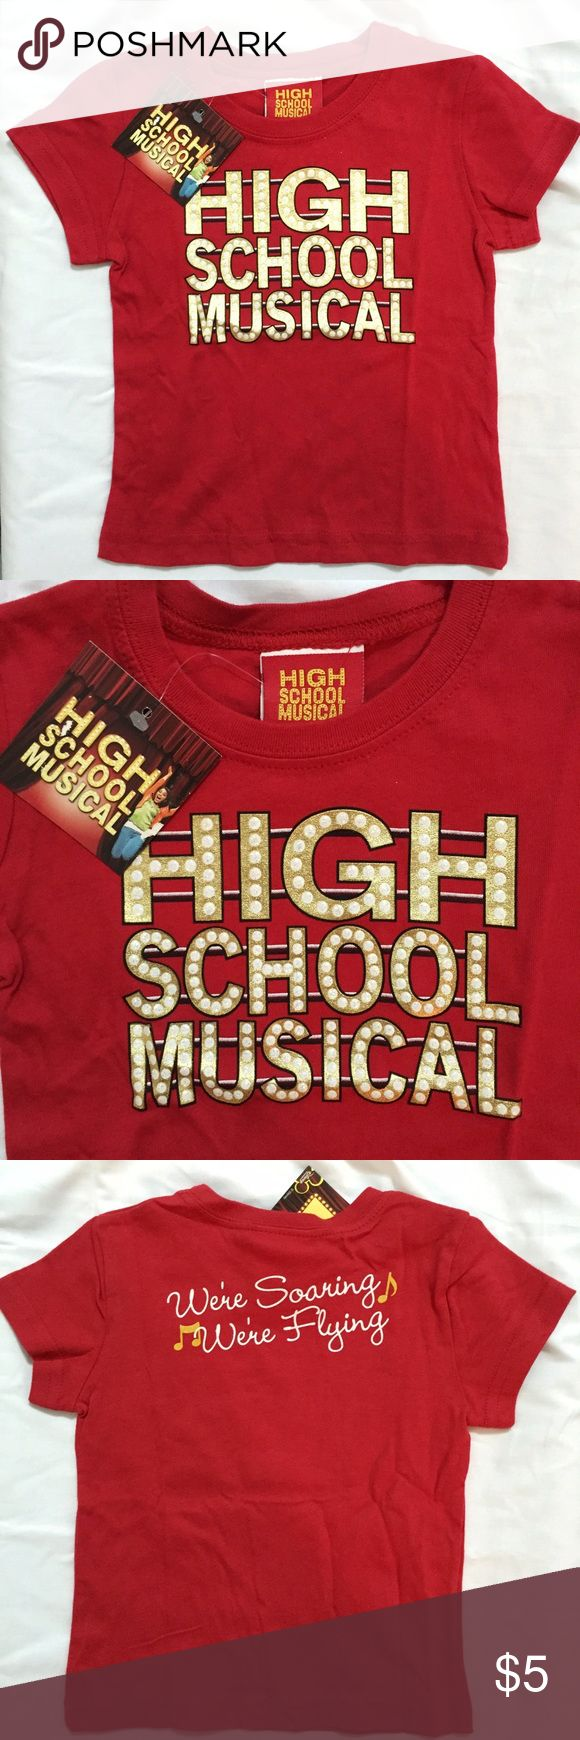 """Disney's High School Musical Marquee Red T-Shirt Brand new with tags, available in Girls size 4T & 5T. Size 5T is missing tags but is new and never worn. This Disney's High School Musical Marquee Red and Gold T-Shirt is perfect for any High School Musical fan. Has the famous lyric """"We're Soaring, We're Flying"""" on the back. Add on to a bundle to save on shipping. Disney Shirts & Tops Tees - Short Sleeve"""